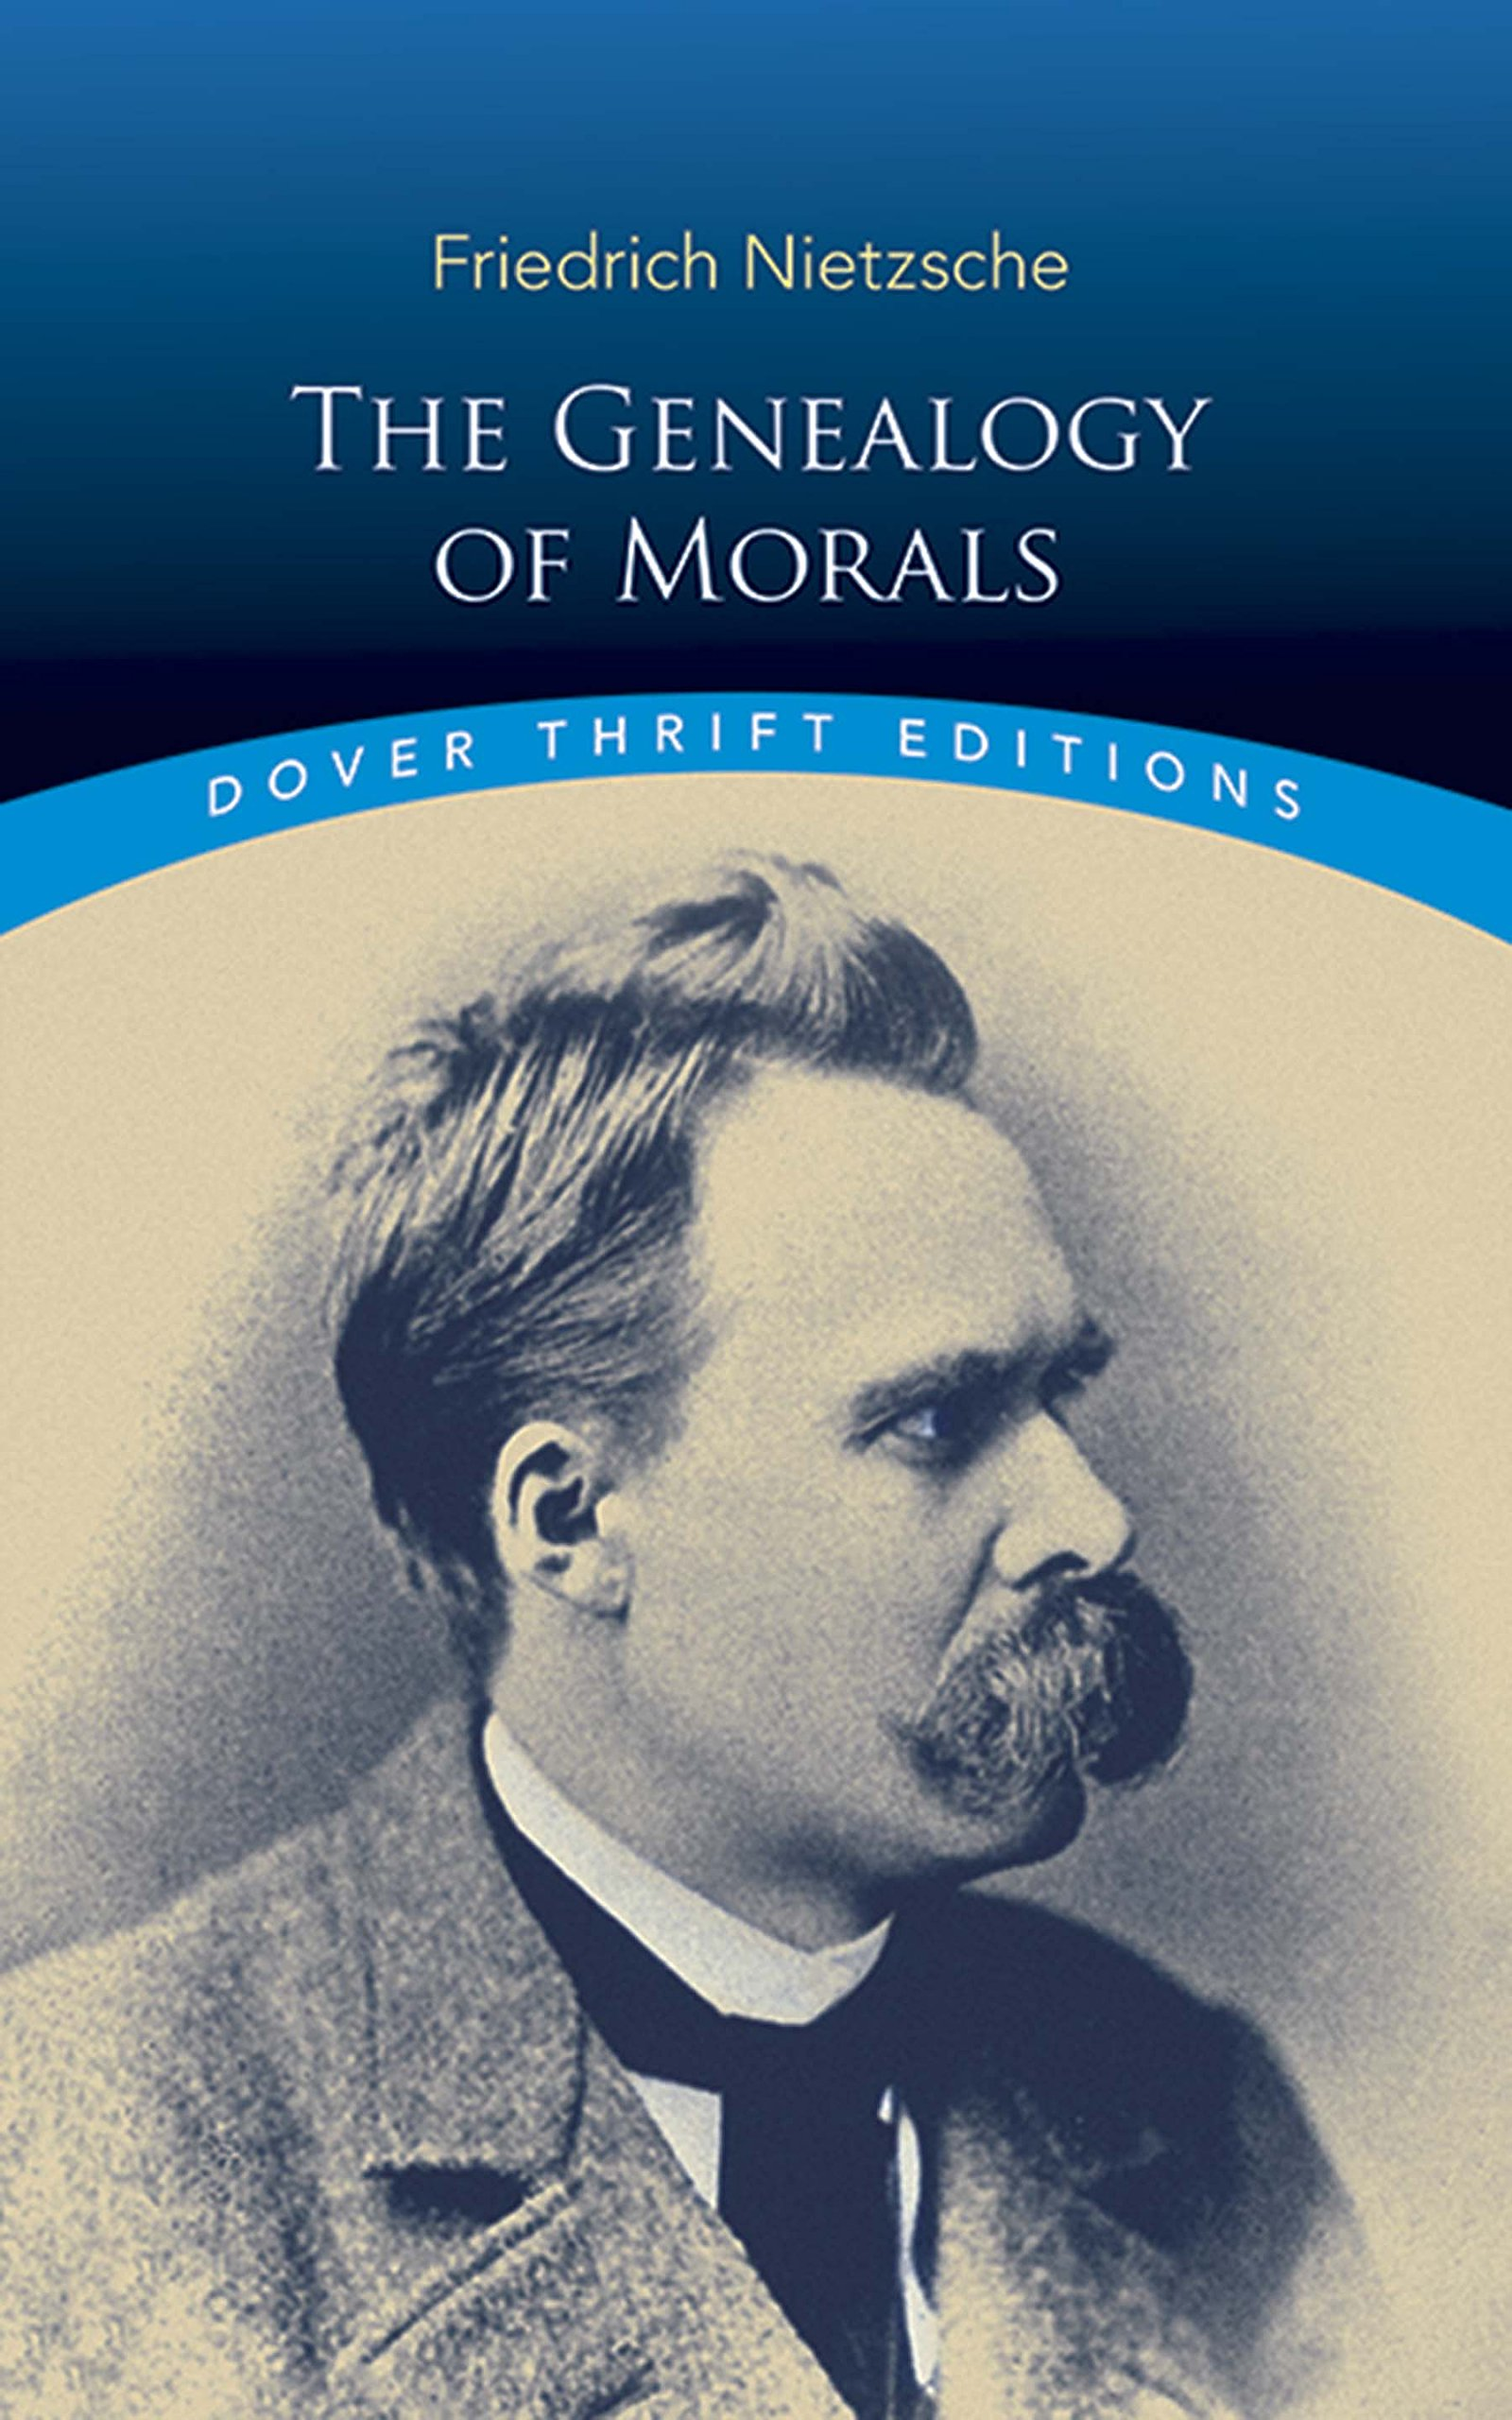 nietzsche essays nietzsche essay god is dead  the genealogy of morals dover thrift editions friedrich the genealogy of morals dover thrift editions friedrich amor fati essay